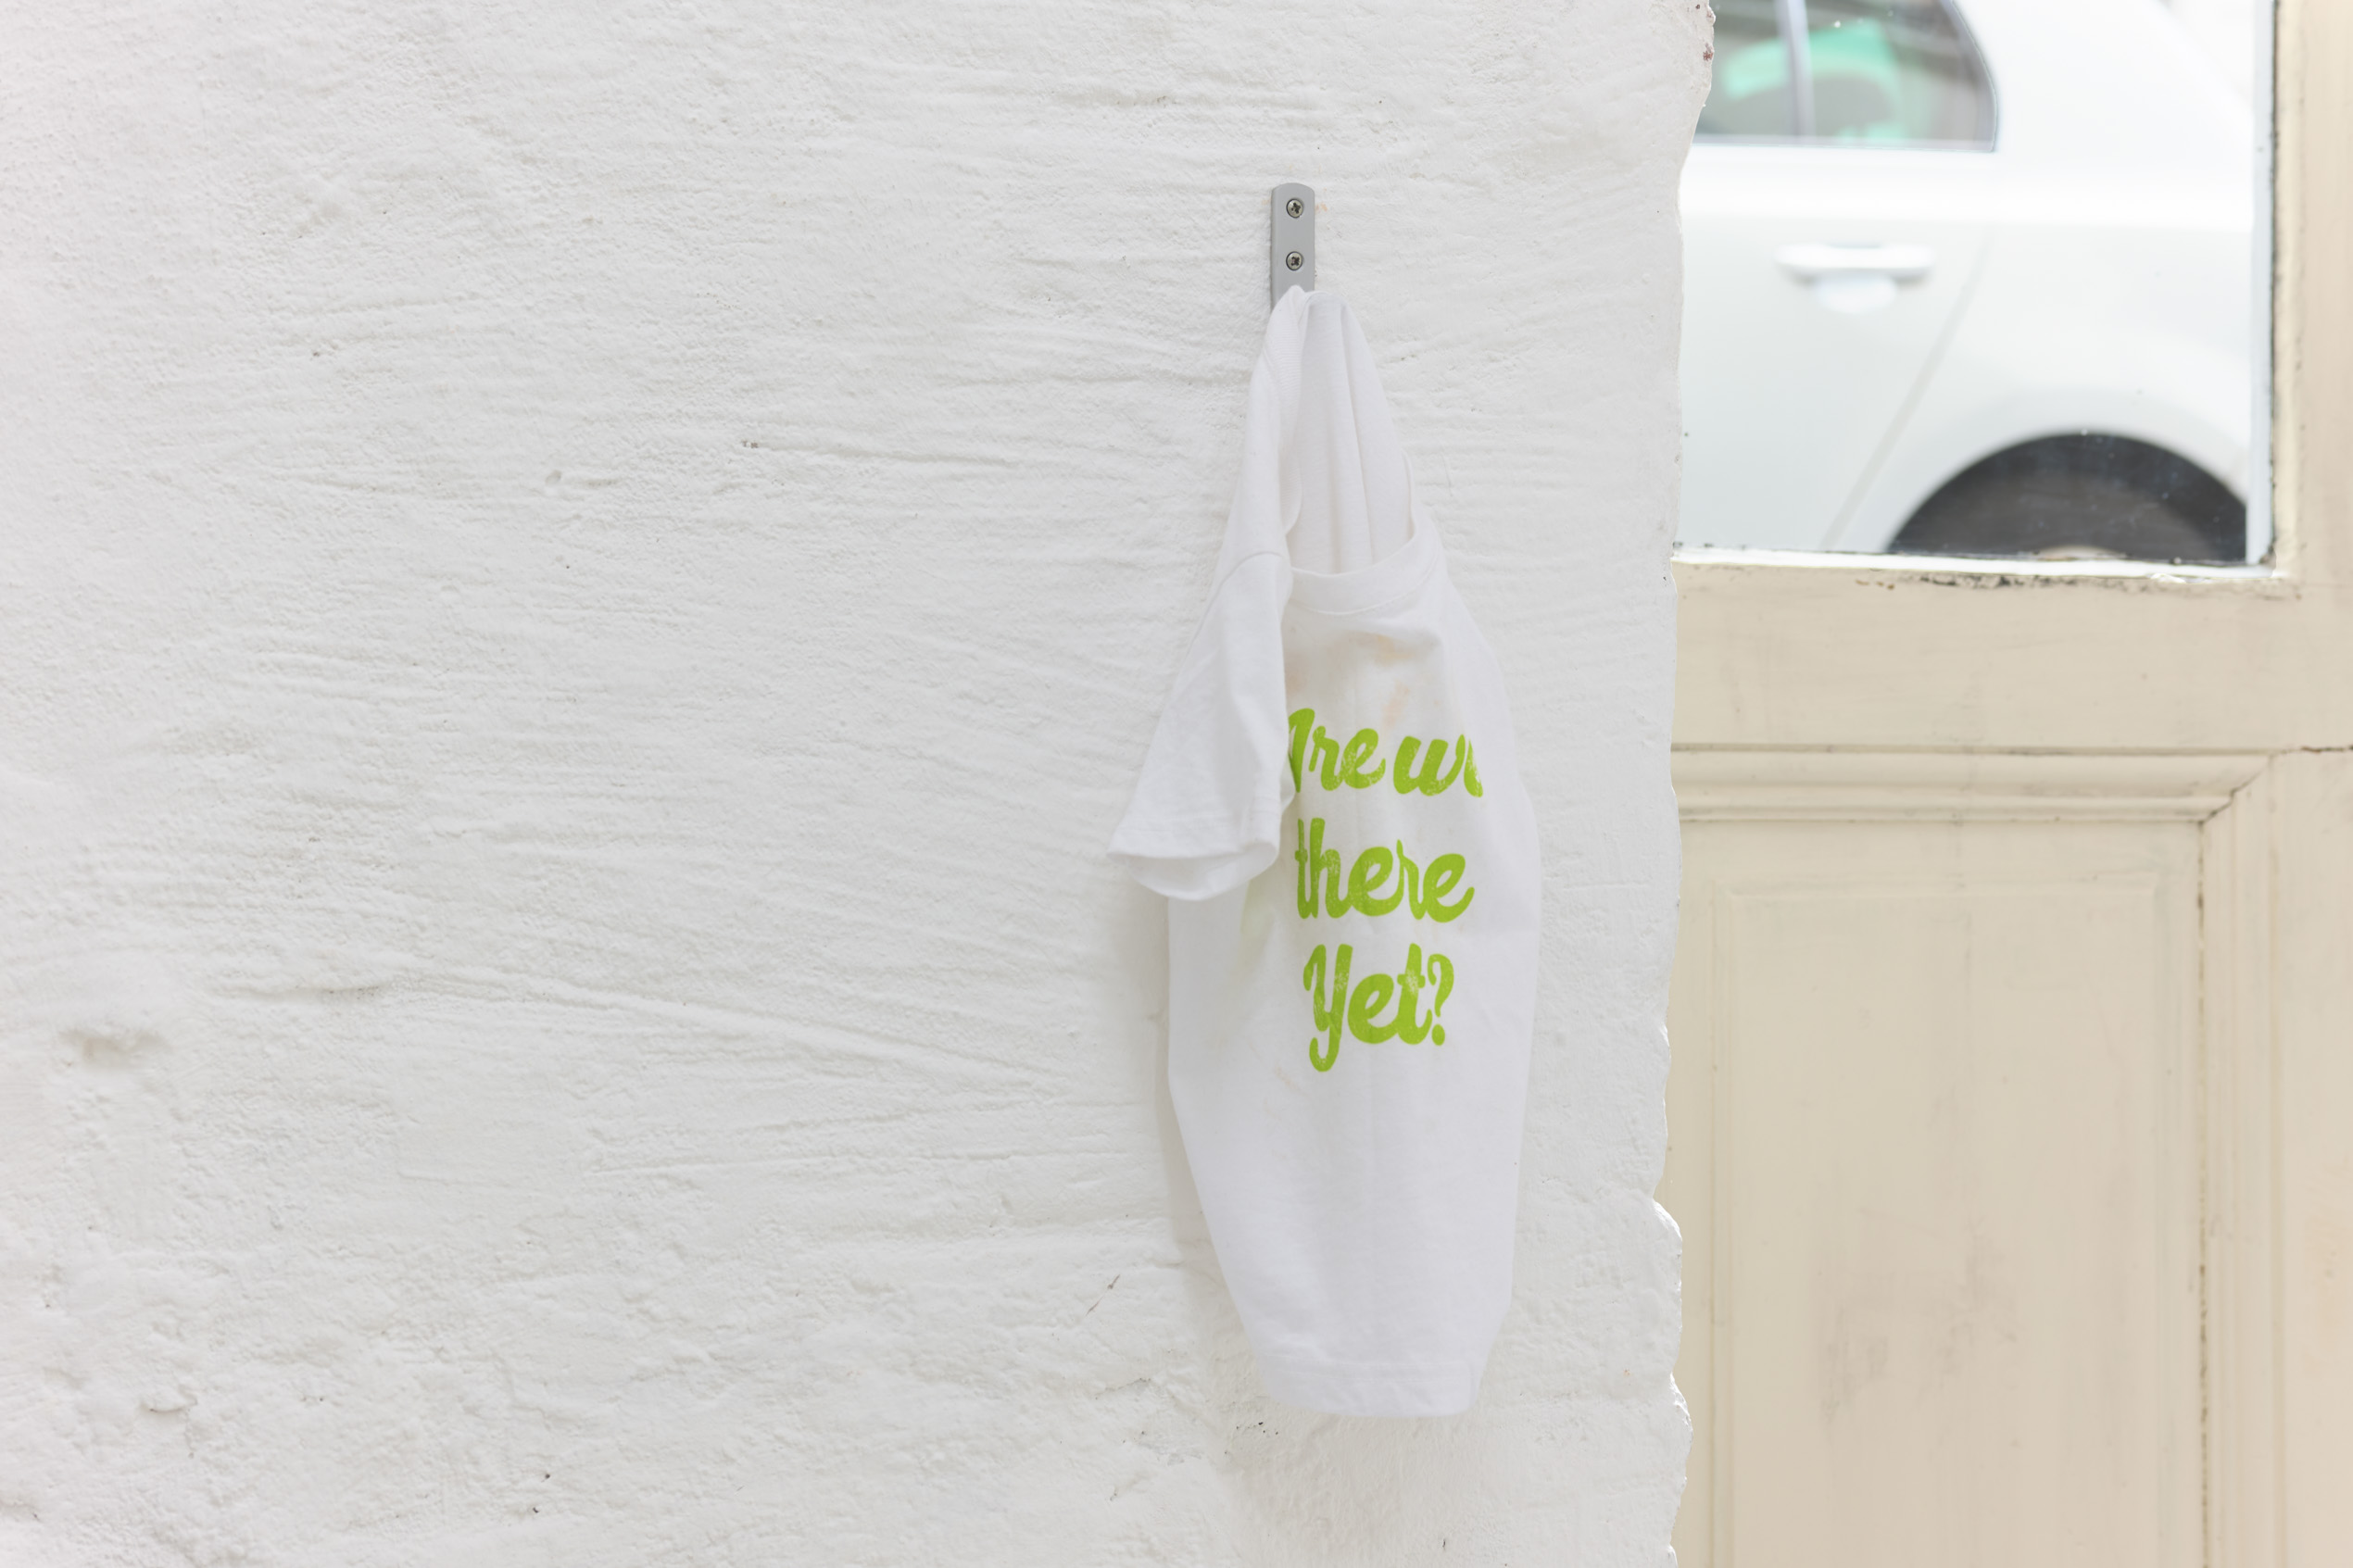 Emily Jones, Greenhithe for Bluewater, toddlers tshirt which reads 'Are we there yet?', stag print on canvas with LED lights